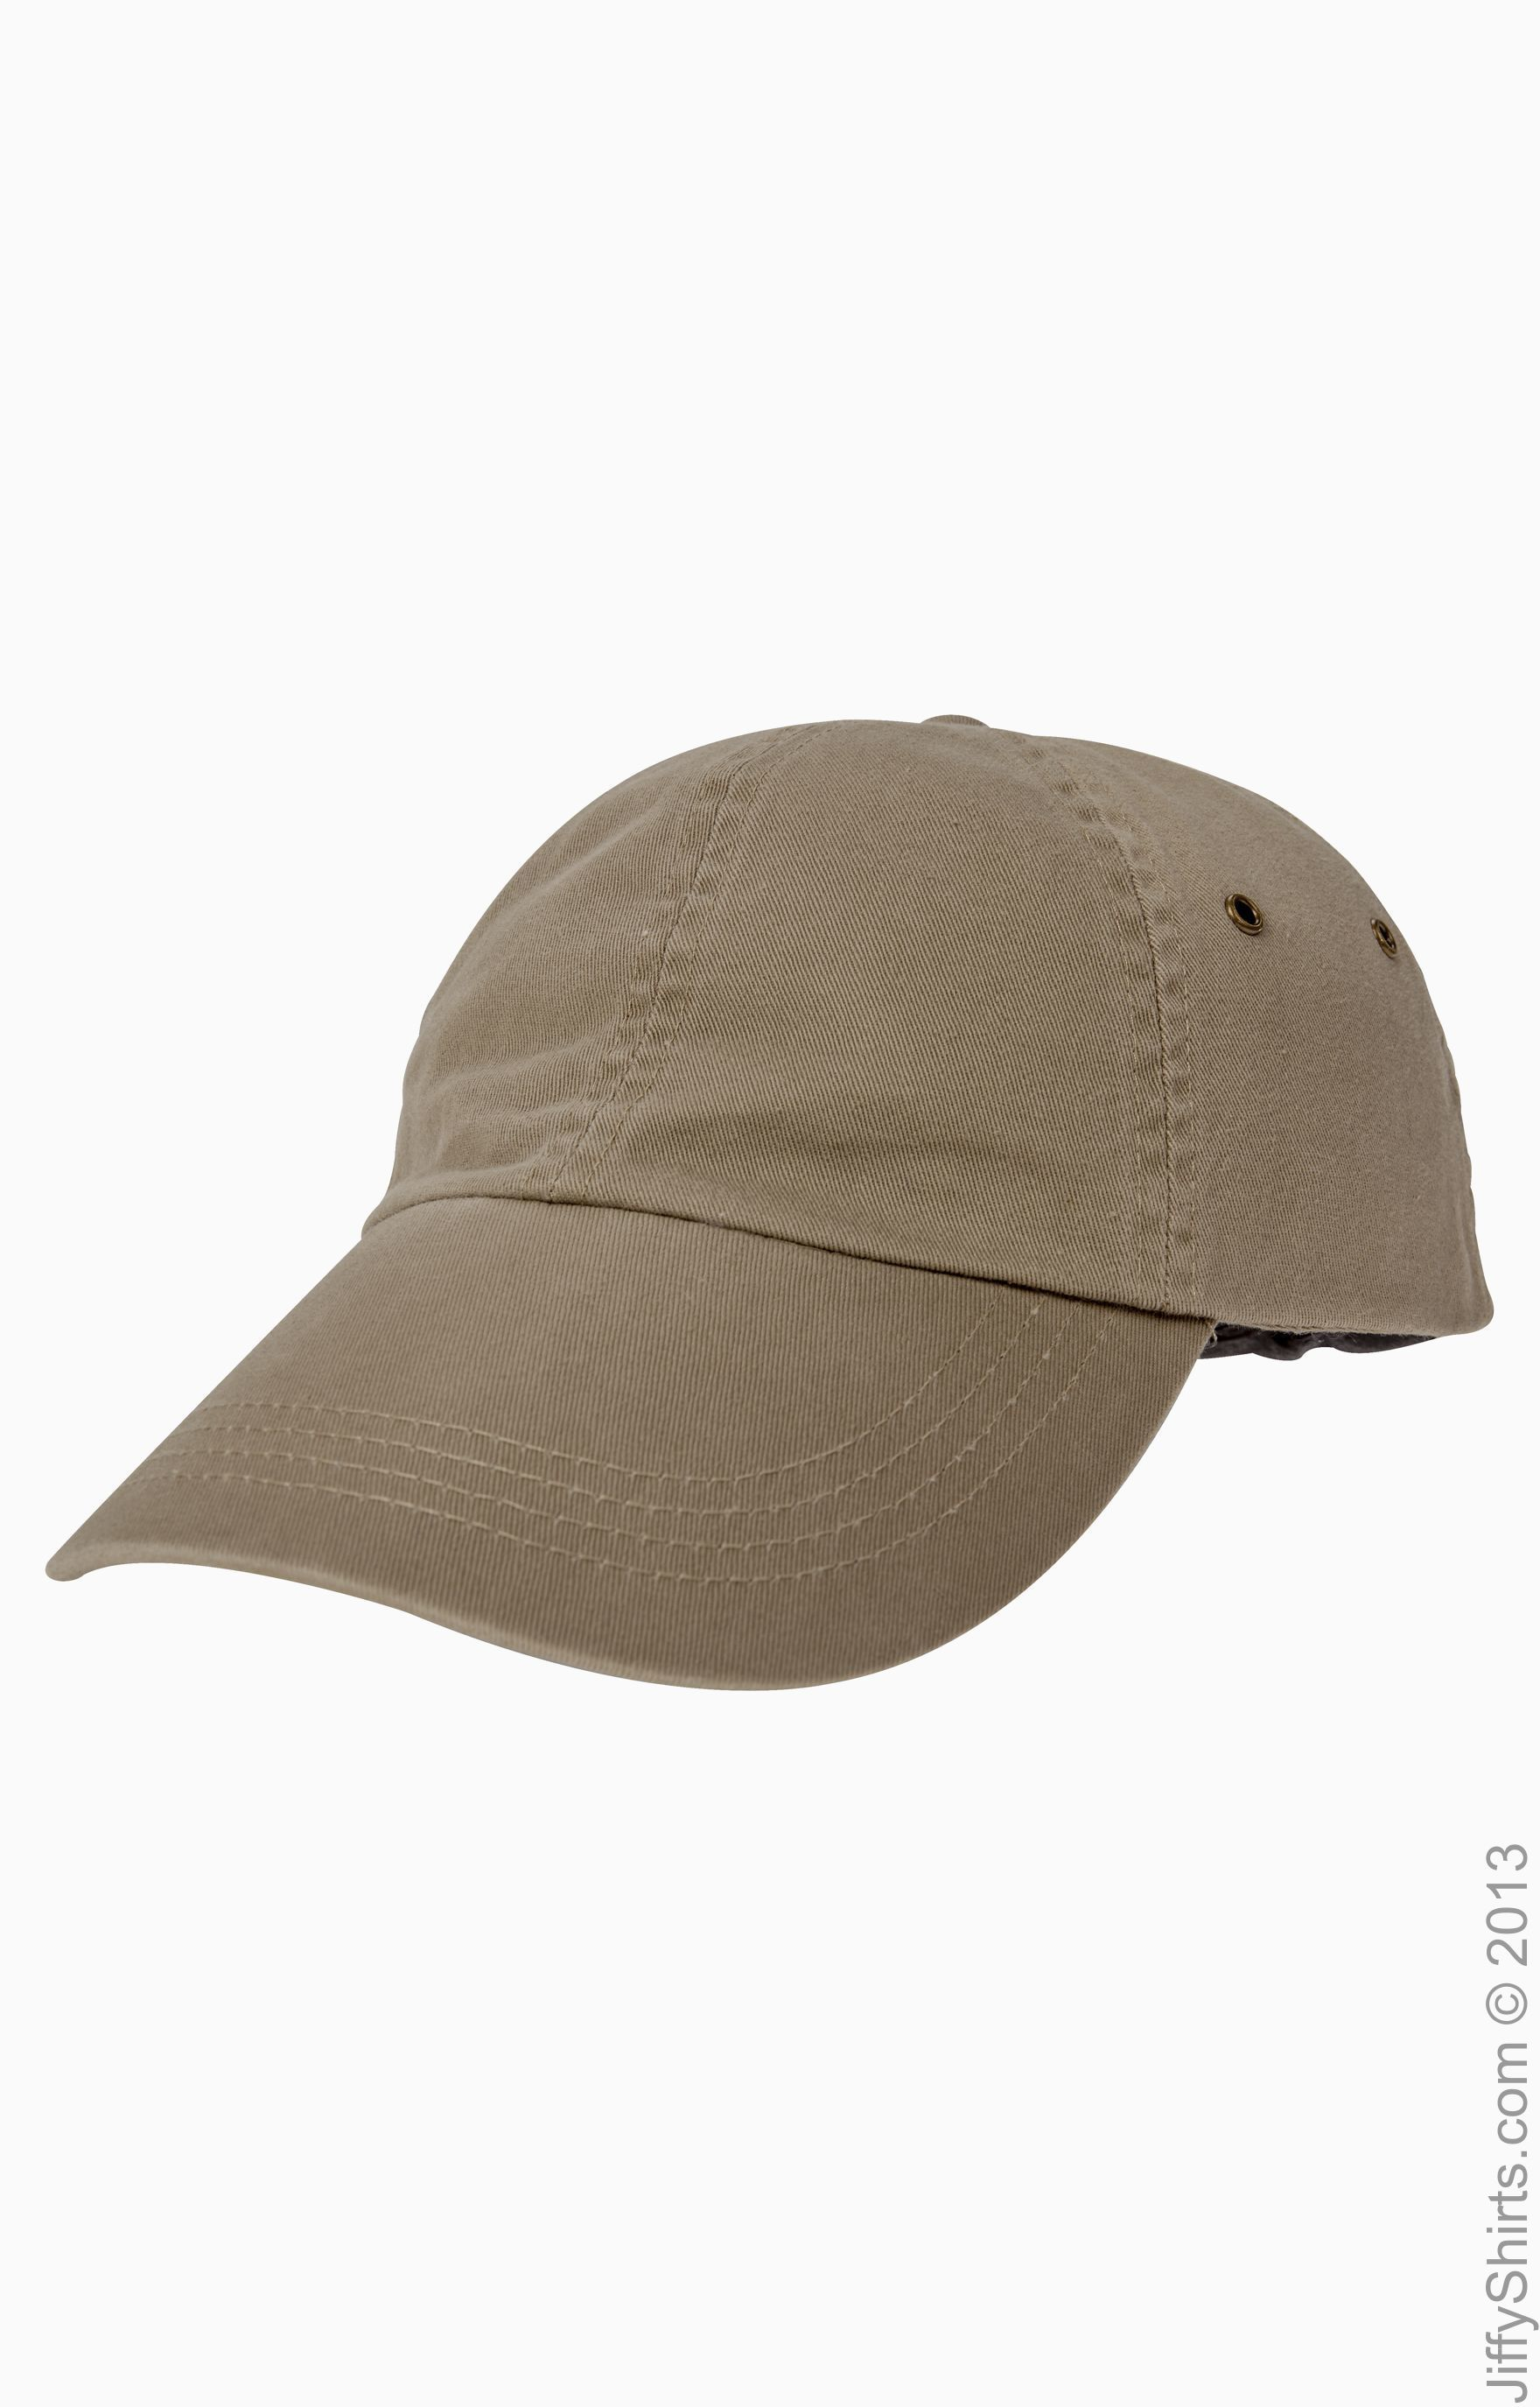 Result Cap Mens Womens Adults Baseball Cap Low Profile Heaby Brushed Cotton Hat